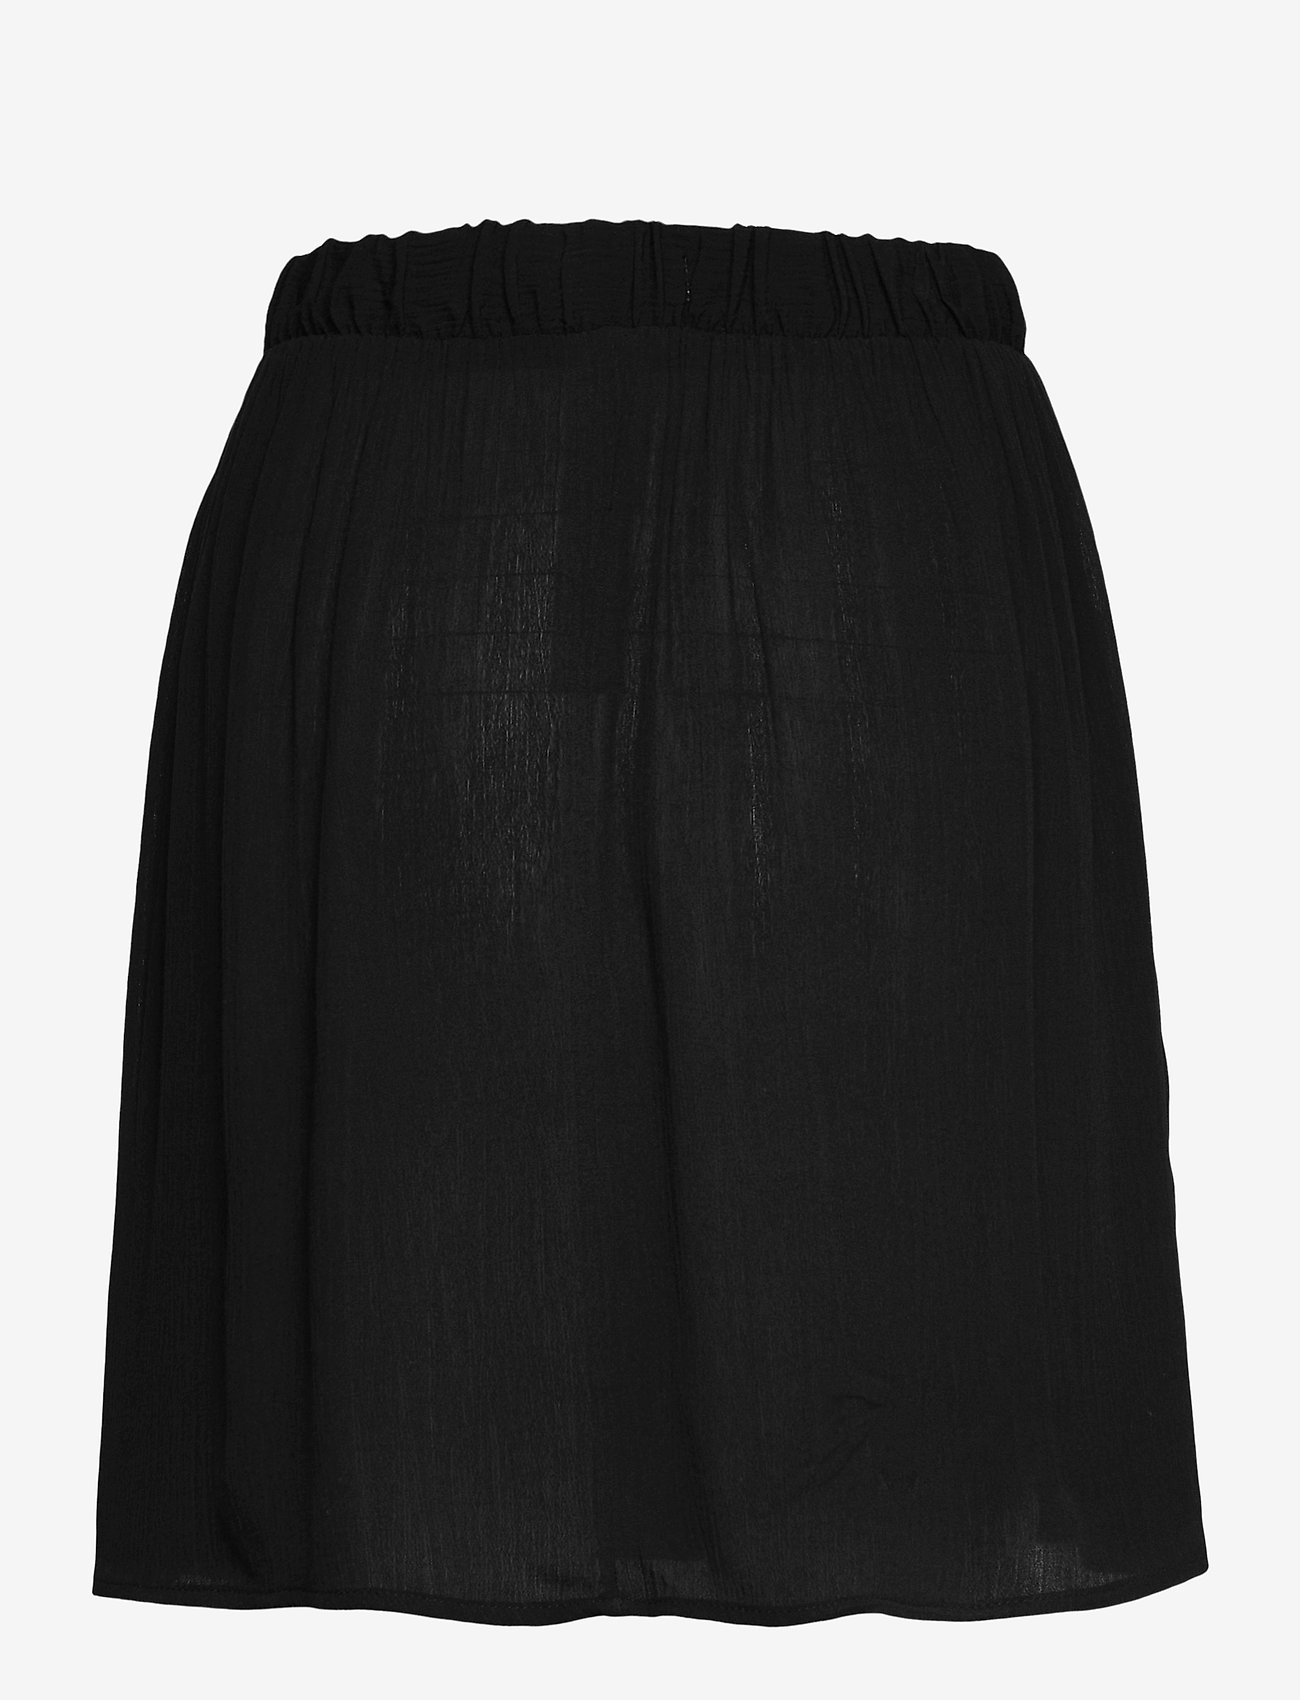 ICHI - IHMARRAKECH SO SK - short skirts - black - 1